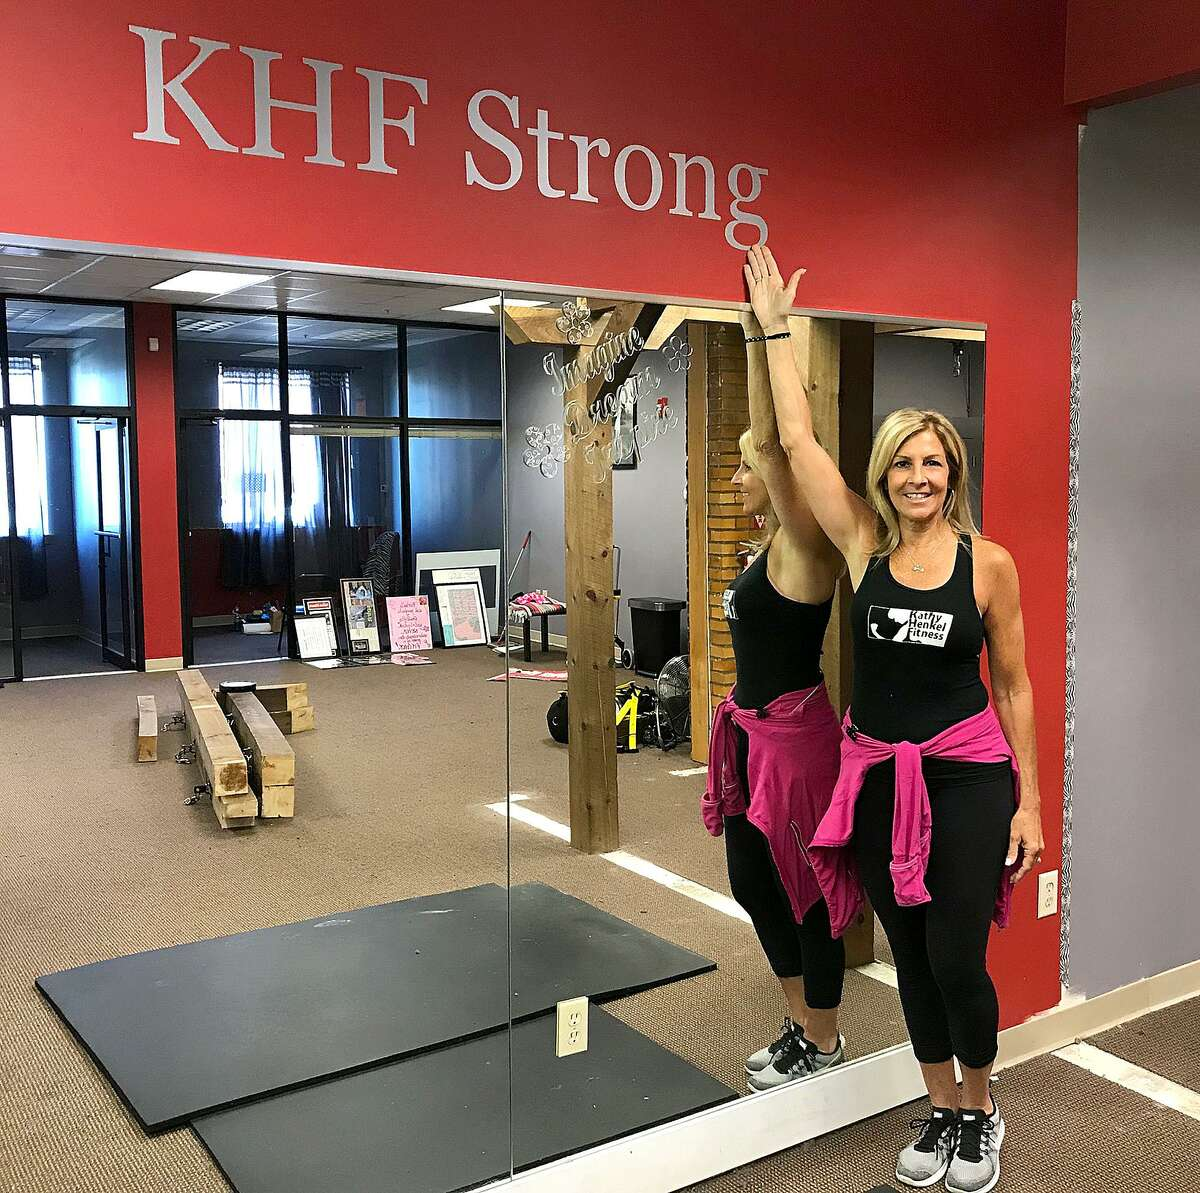 Kathy Henkel stands in her fitness studio in New Milford, Conn., on Tuesday, May 29, 2018. Kathy Henkel Fitness will close its doors after eight years in business on Wednesday.